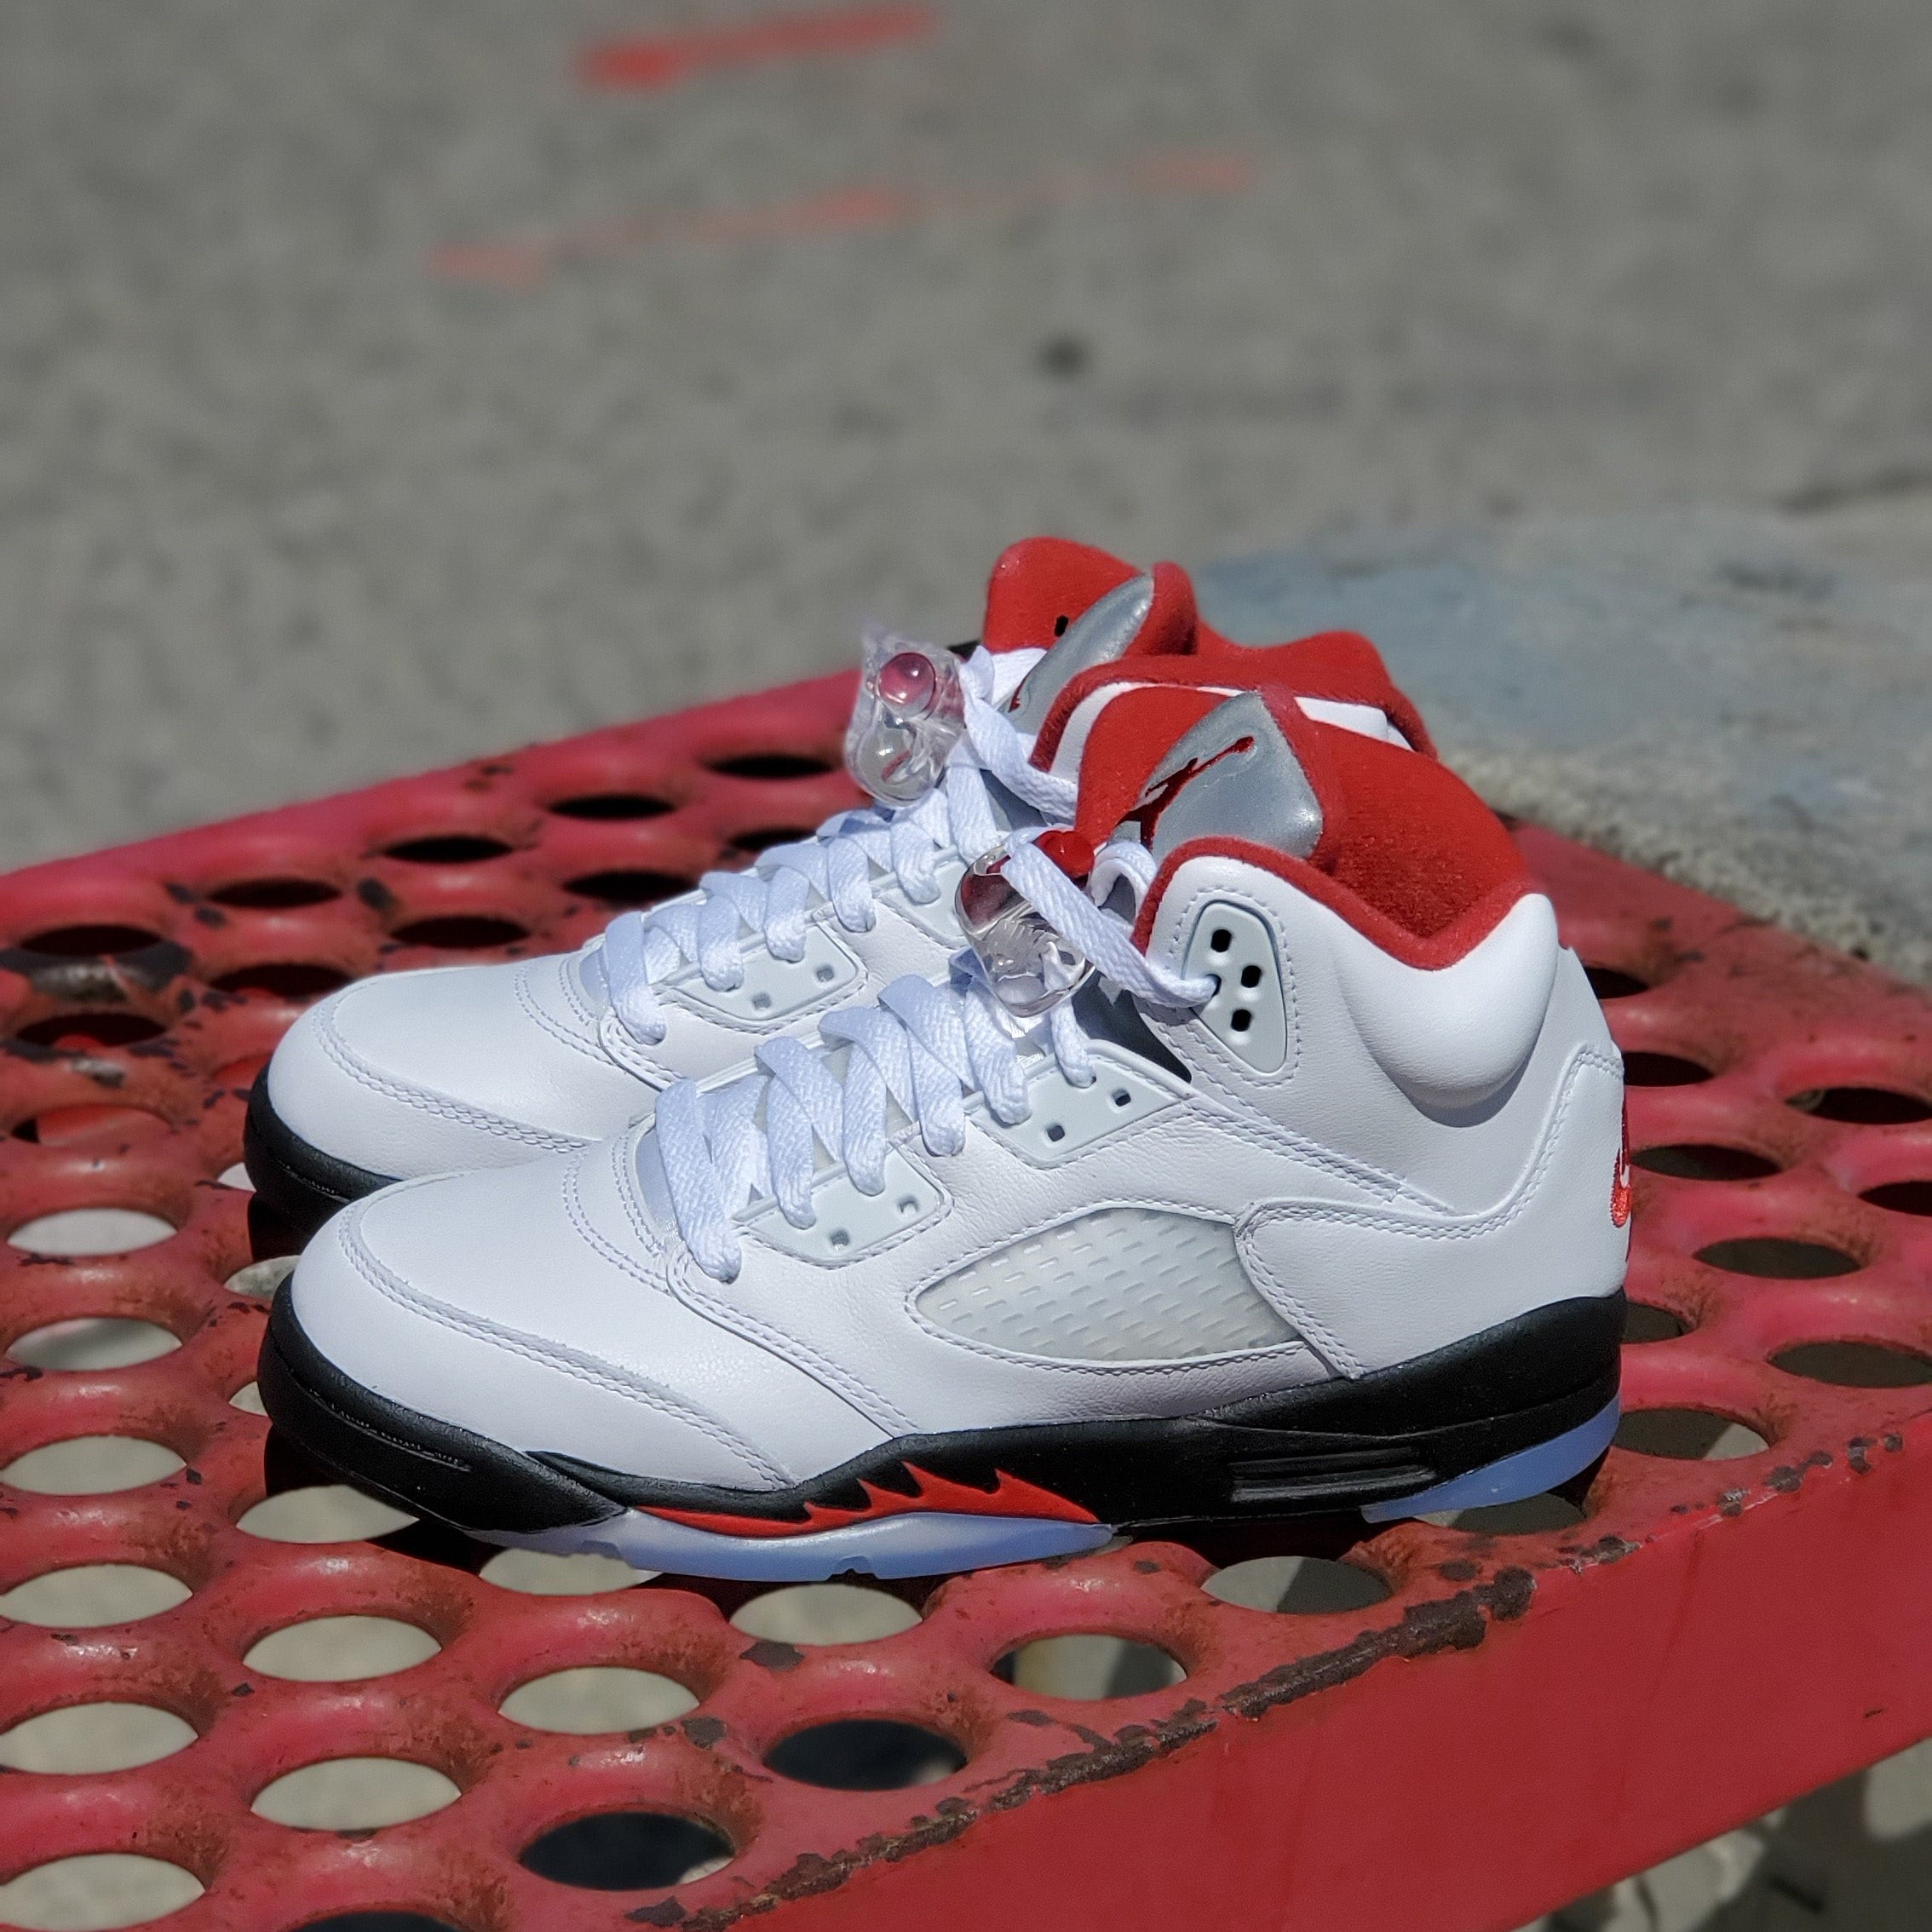 AIR JORDAN 5 RETRO GS FIRE RED 2020 SILVER TONGUE